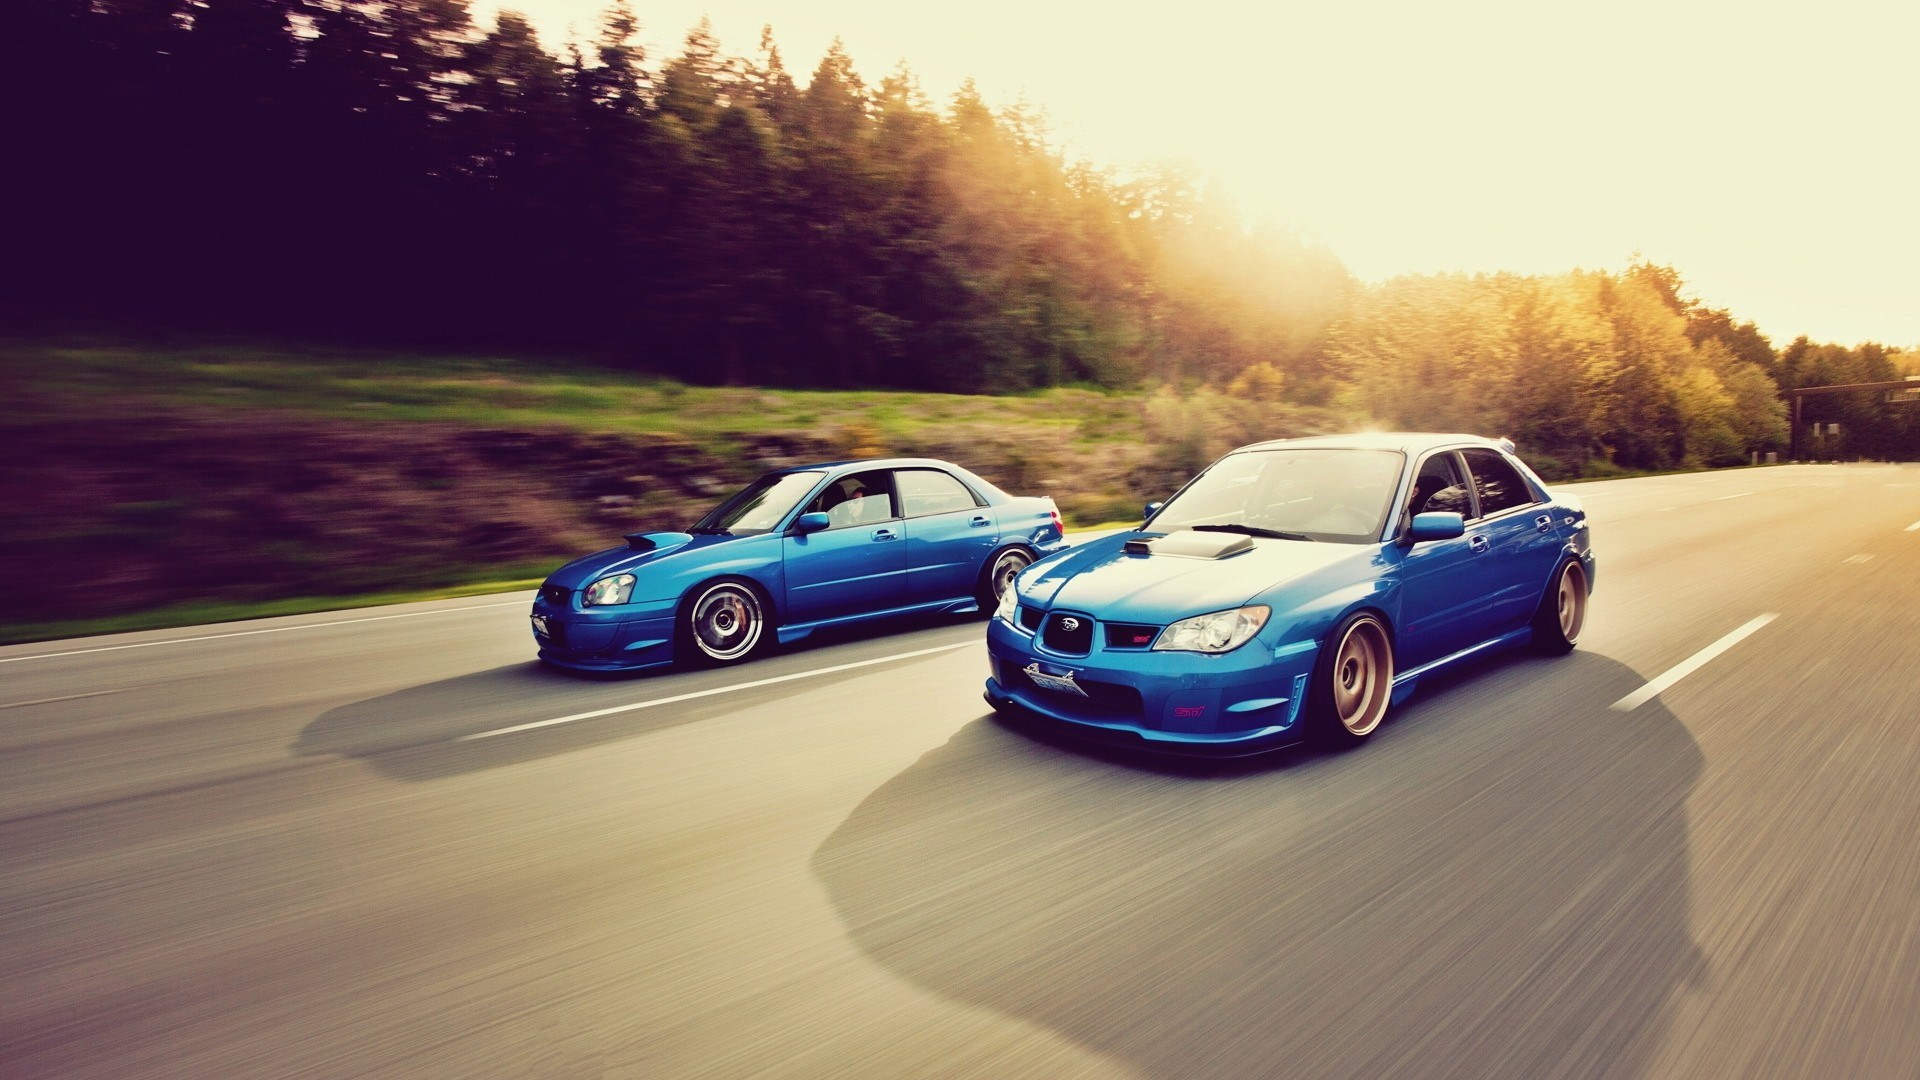 Subaru impreza full hd wallpaper and background image 1920x1080 vehicles subaru impreza wallpaper voltagebd Images